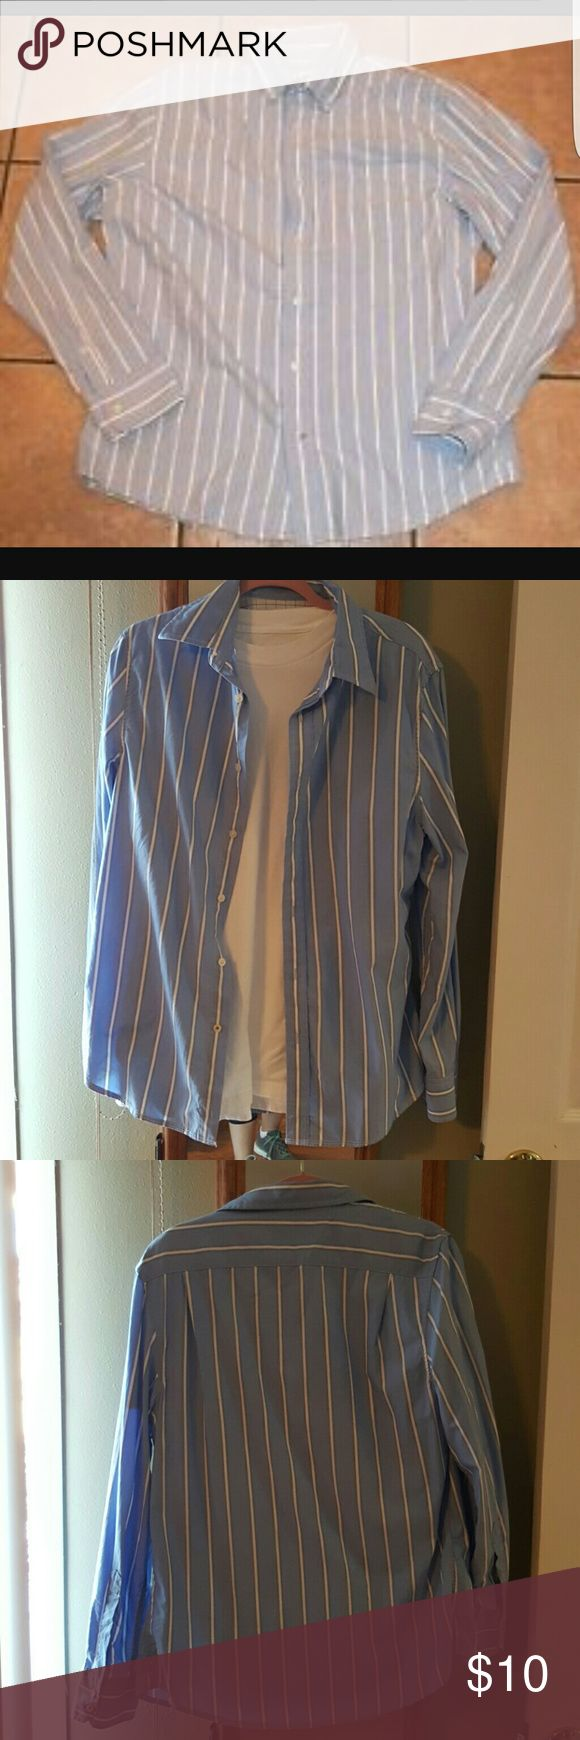 Mossimo Men's long sleeve button down Blue with white stripes.  Only worn a few times...in very good condition. Mossimo Supply Co Shirts Casual Button Down Shirts